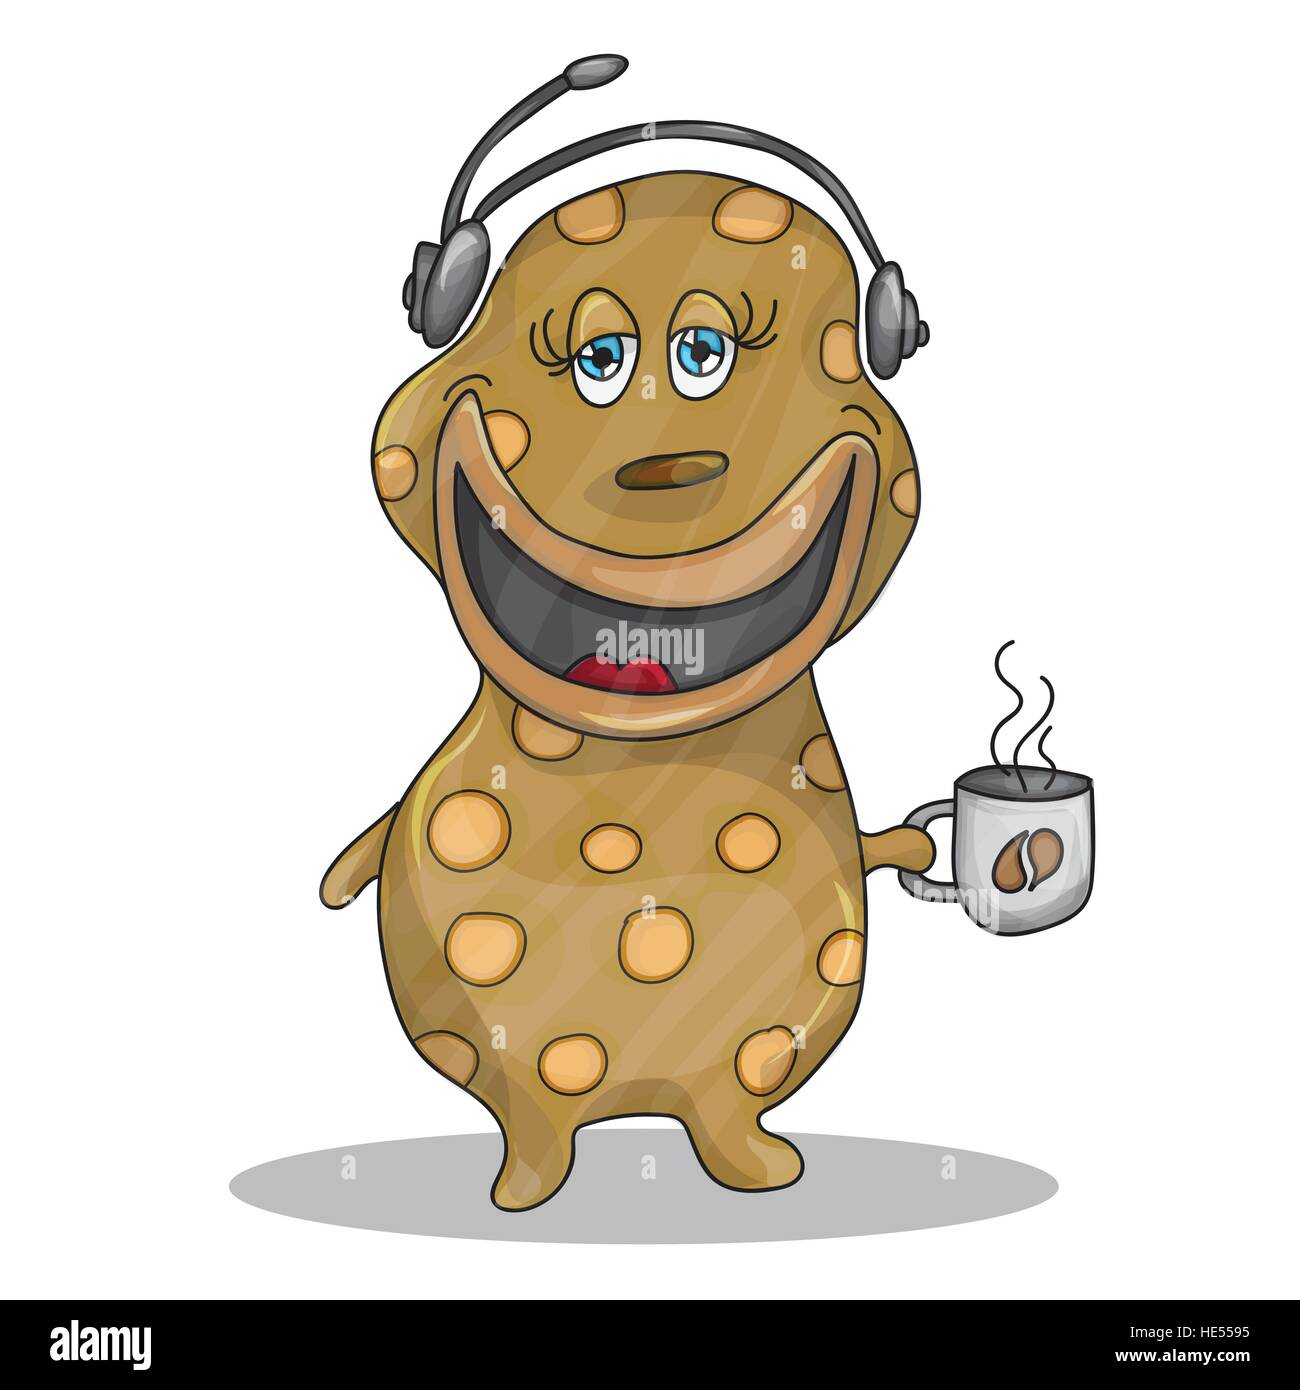 Fun Cartoon Character Phone Operator with a cup of hot coffee - Stock Image